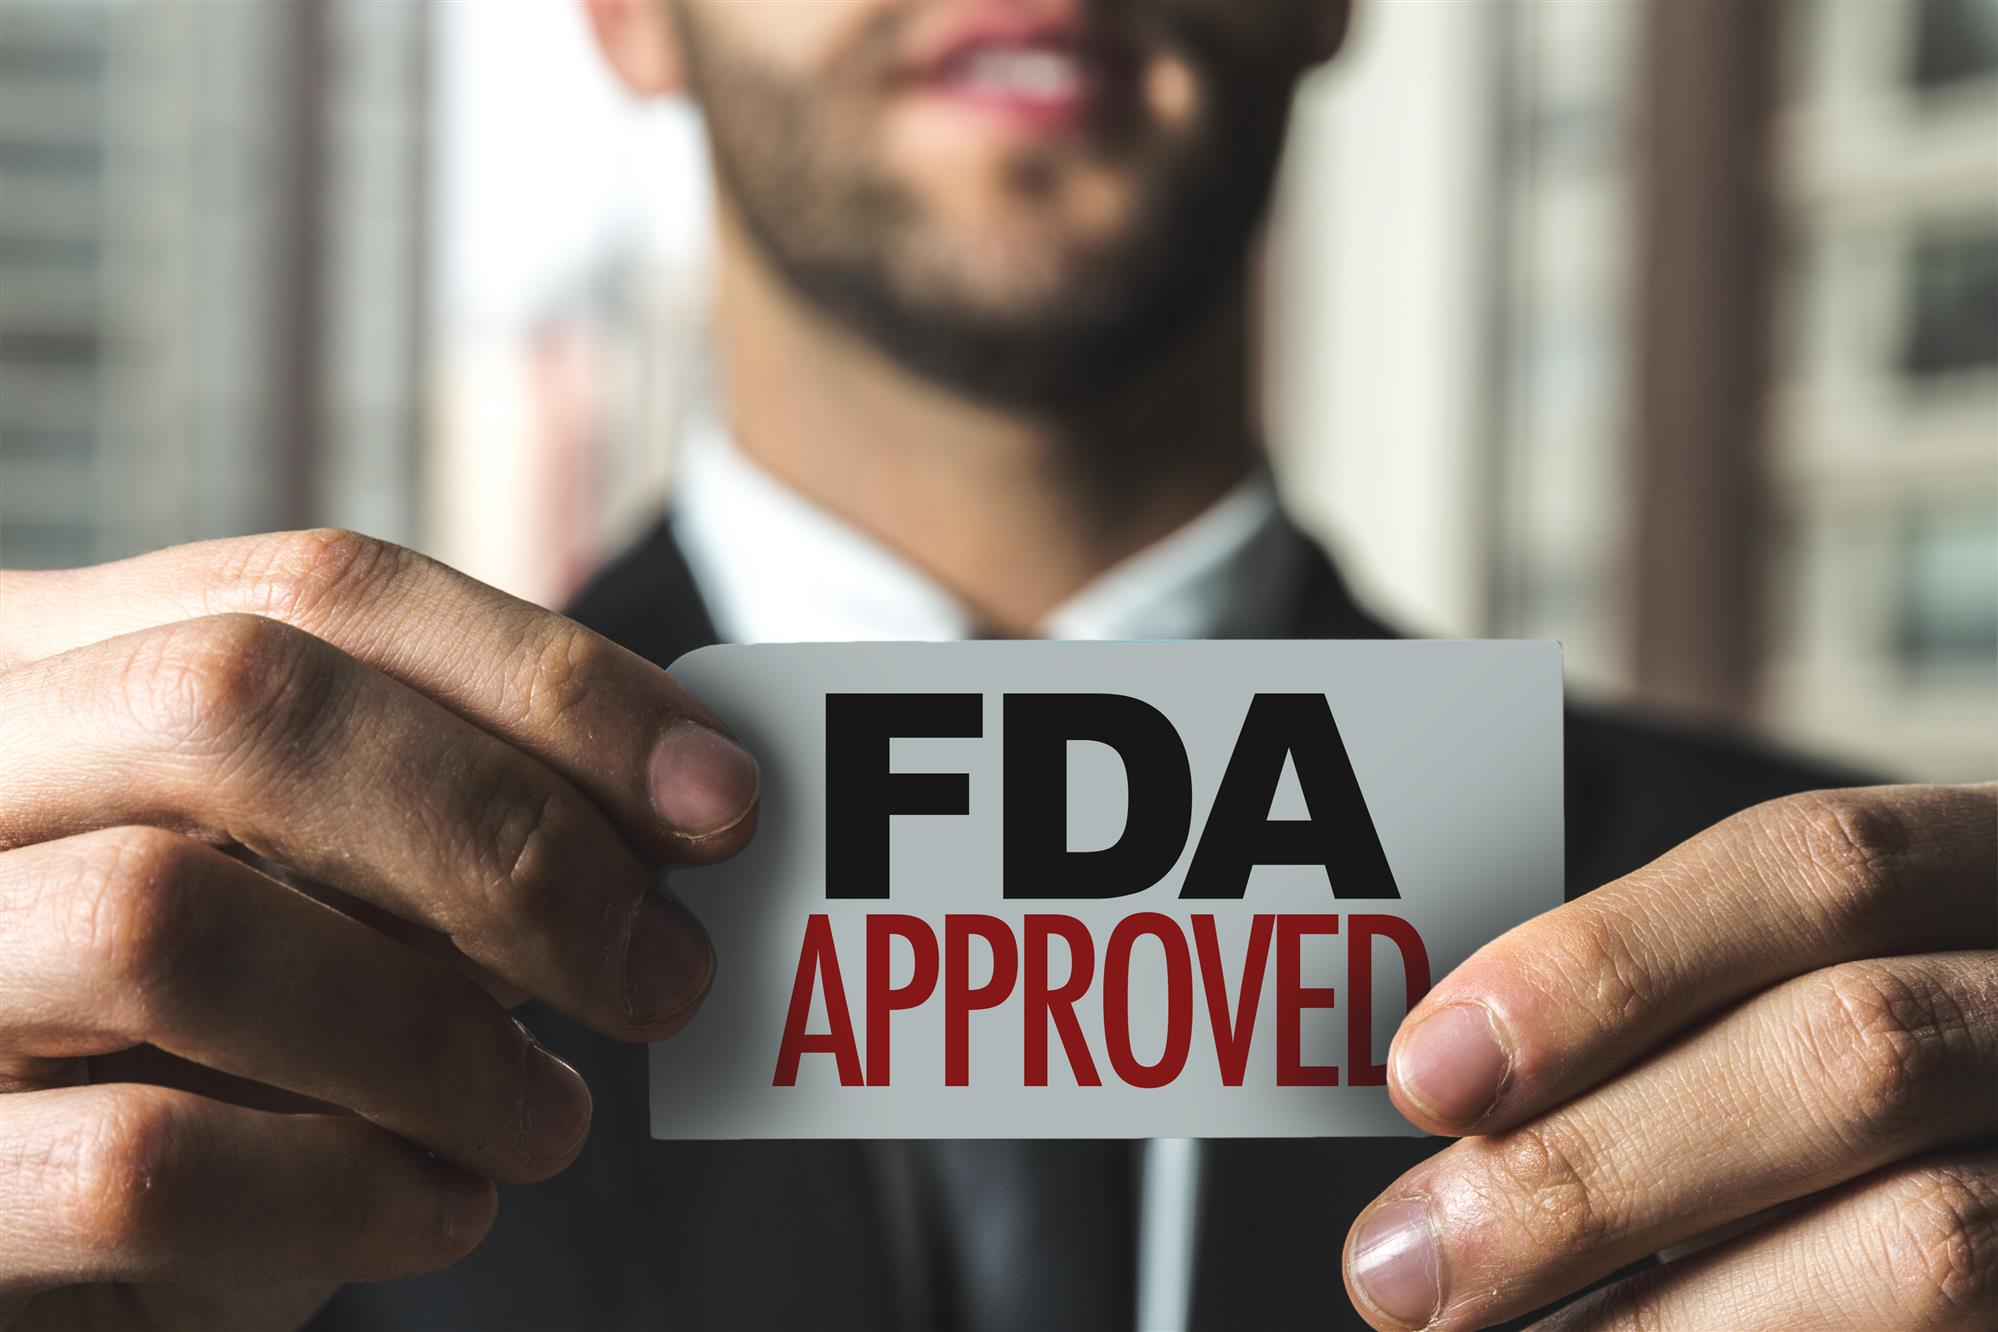 Does FDA Approval Mean Anything